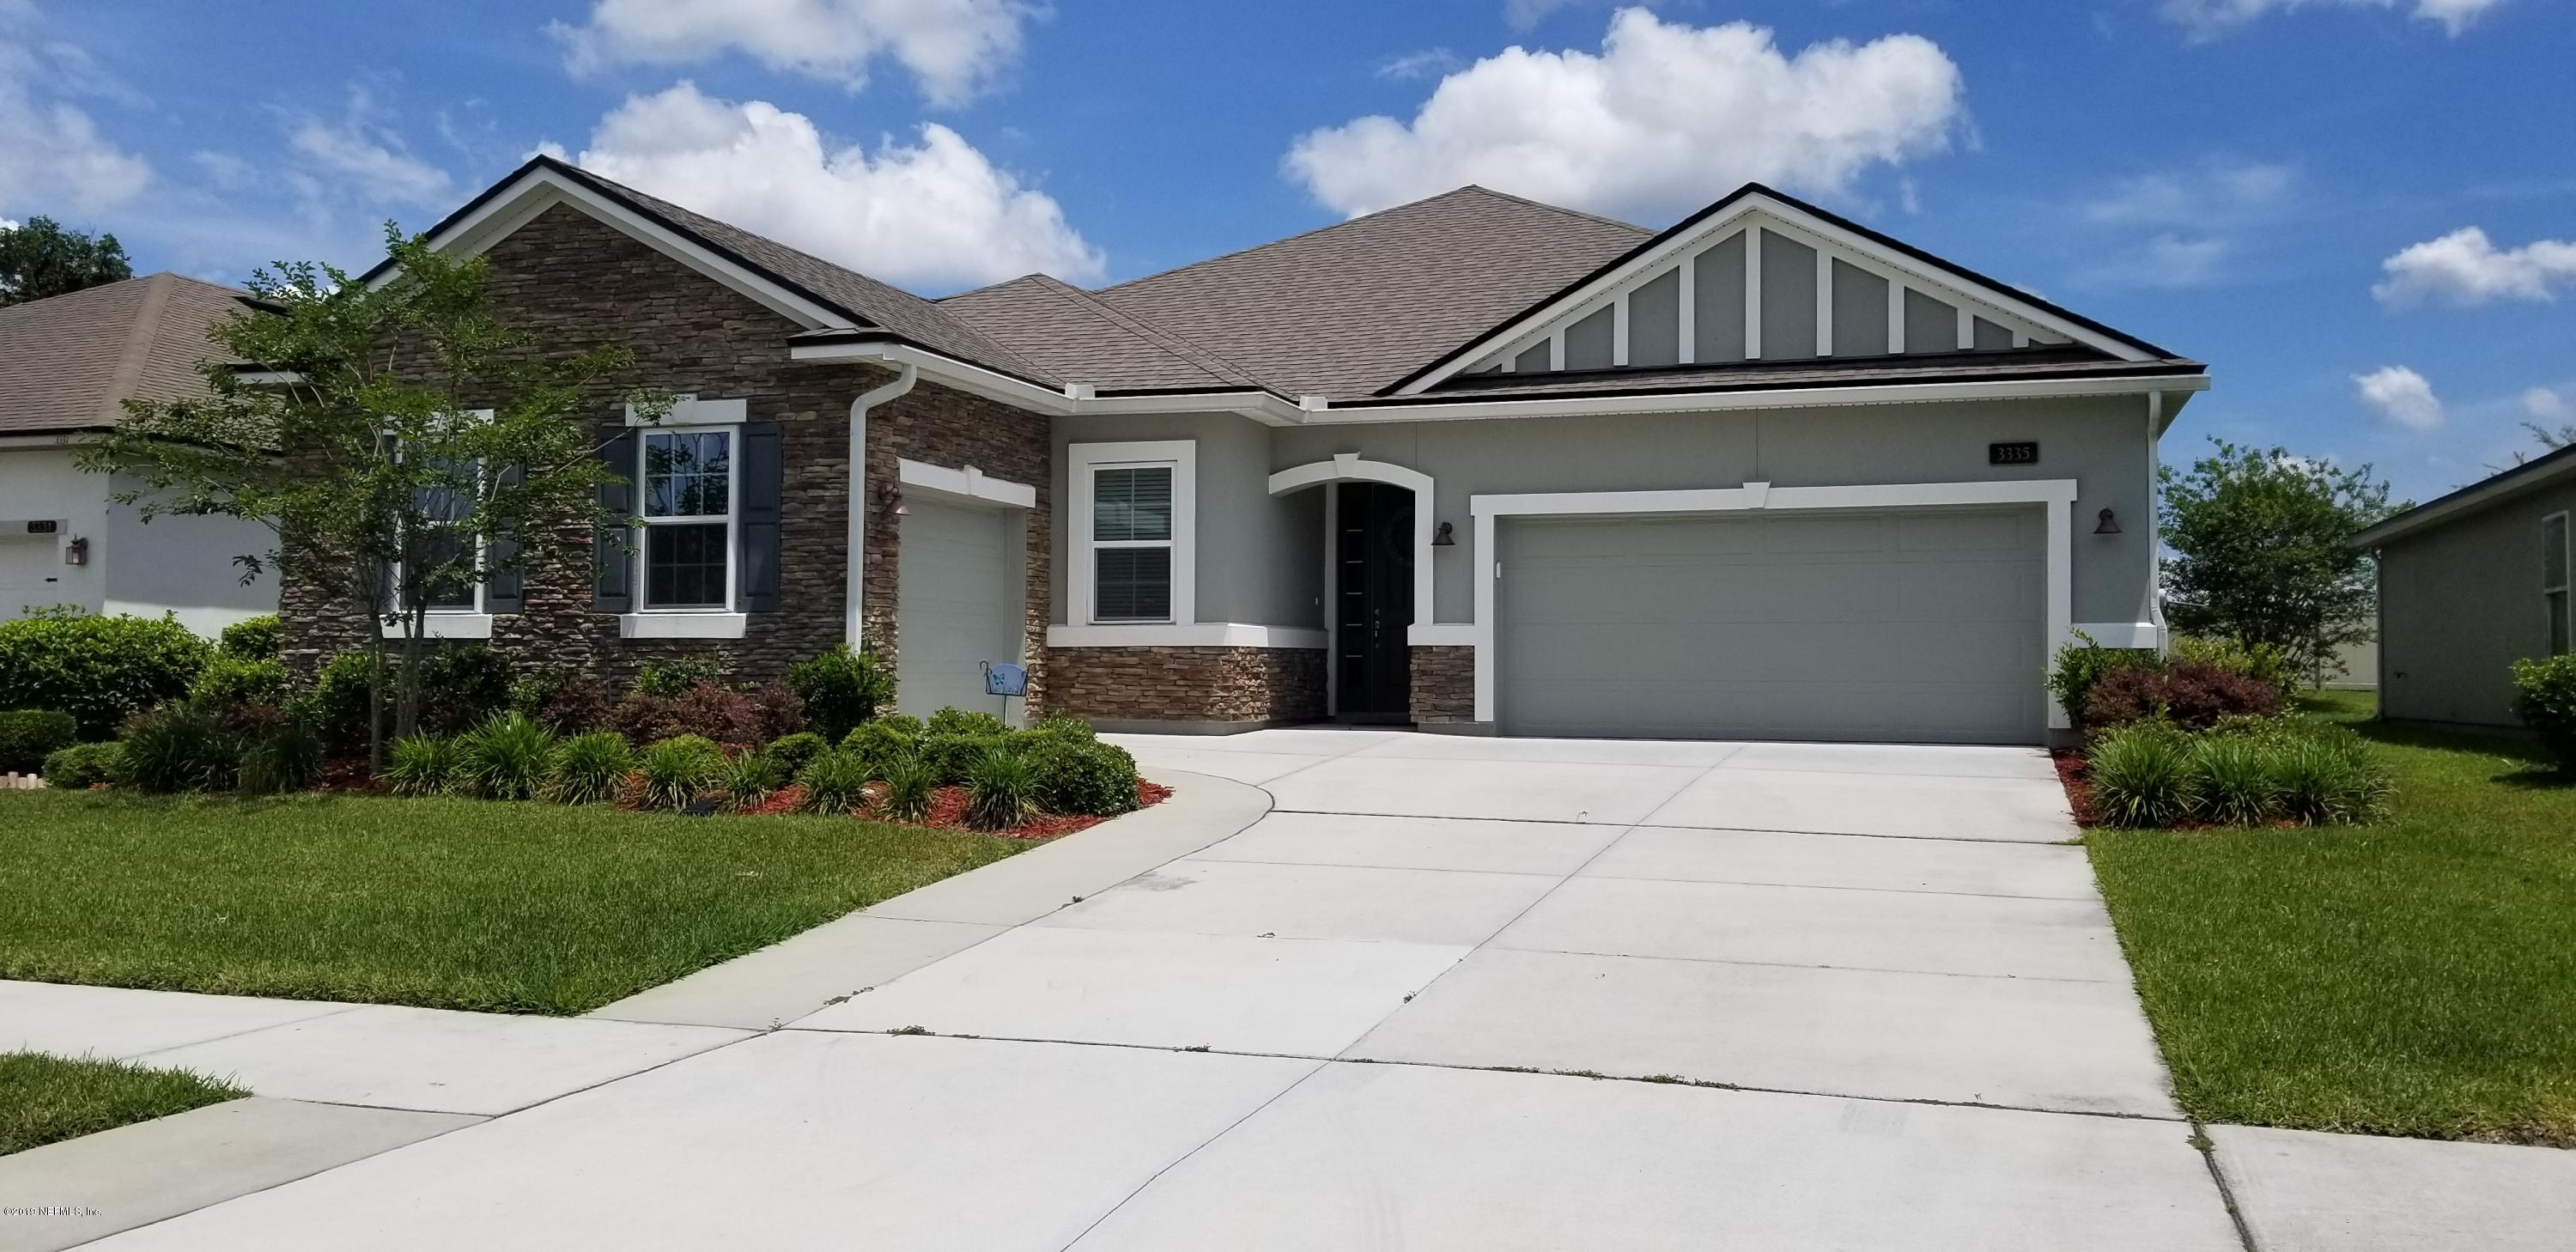 3335 SPRING VALLEY, GREEN COVE SPRINGS, FLORIDA 32043, 3 Bedrooms Bedrooms, ,2 BathroomsBathrooms,Residential - single family,For sale,SPRING VALLEY,993489